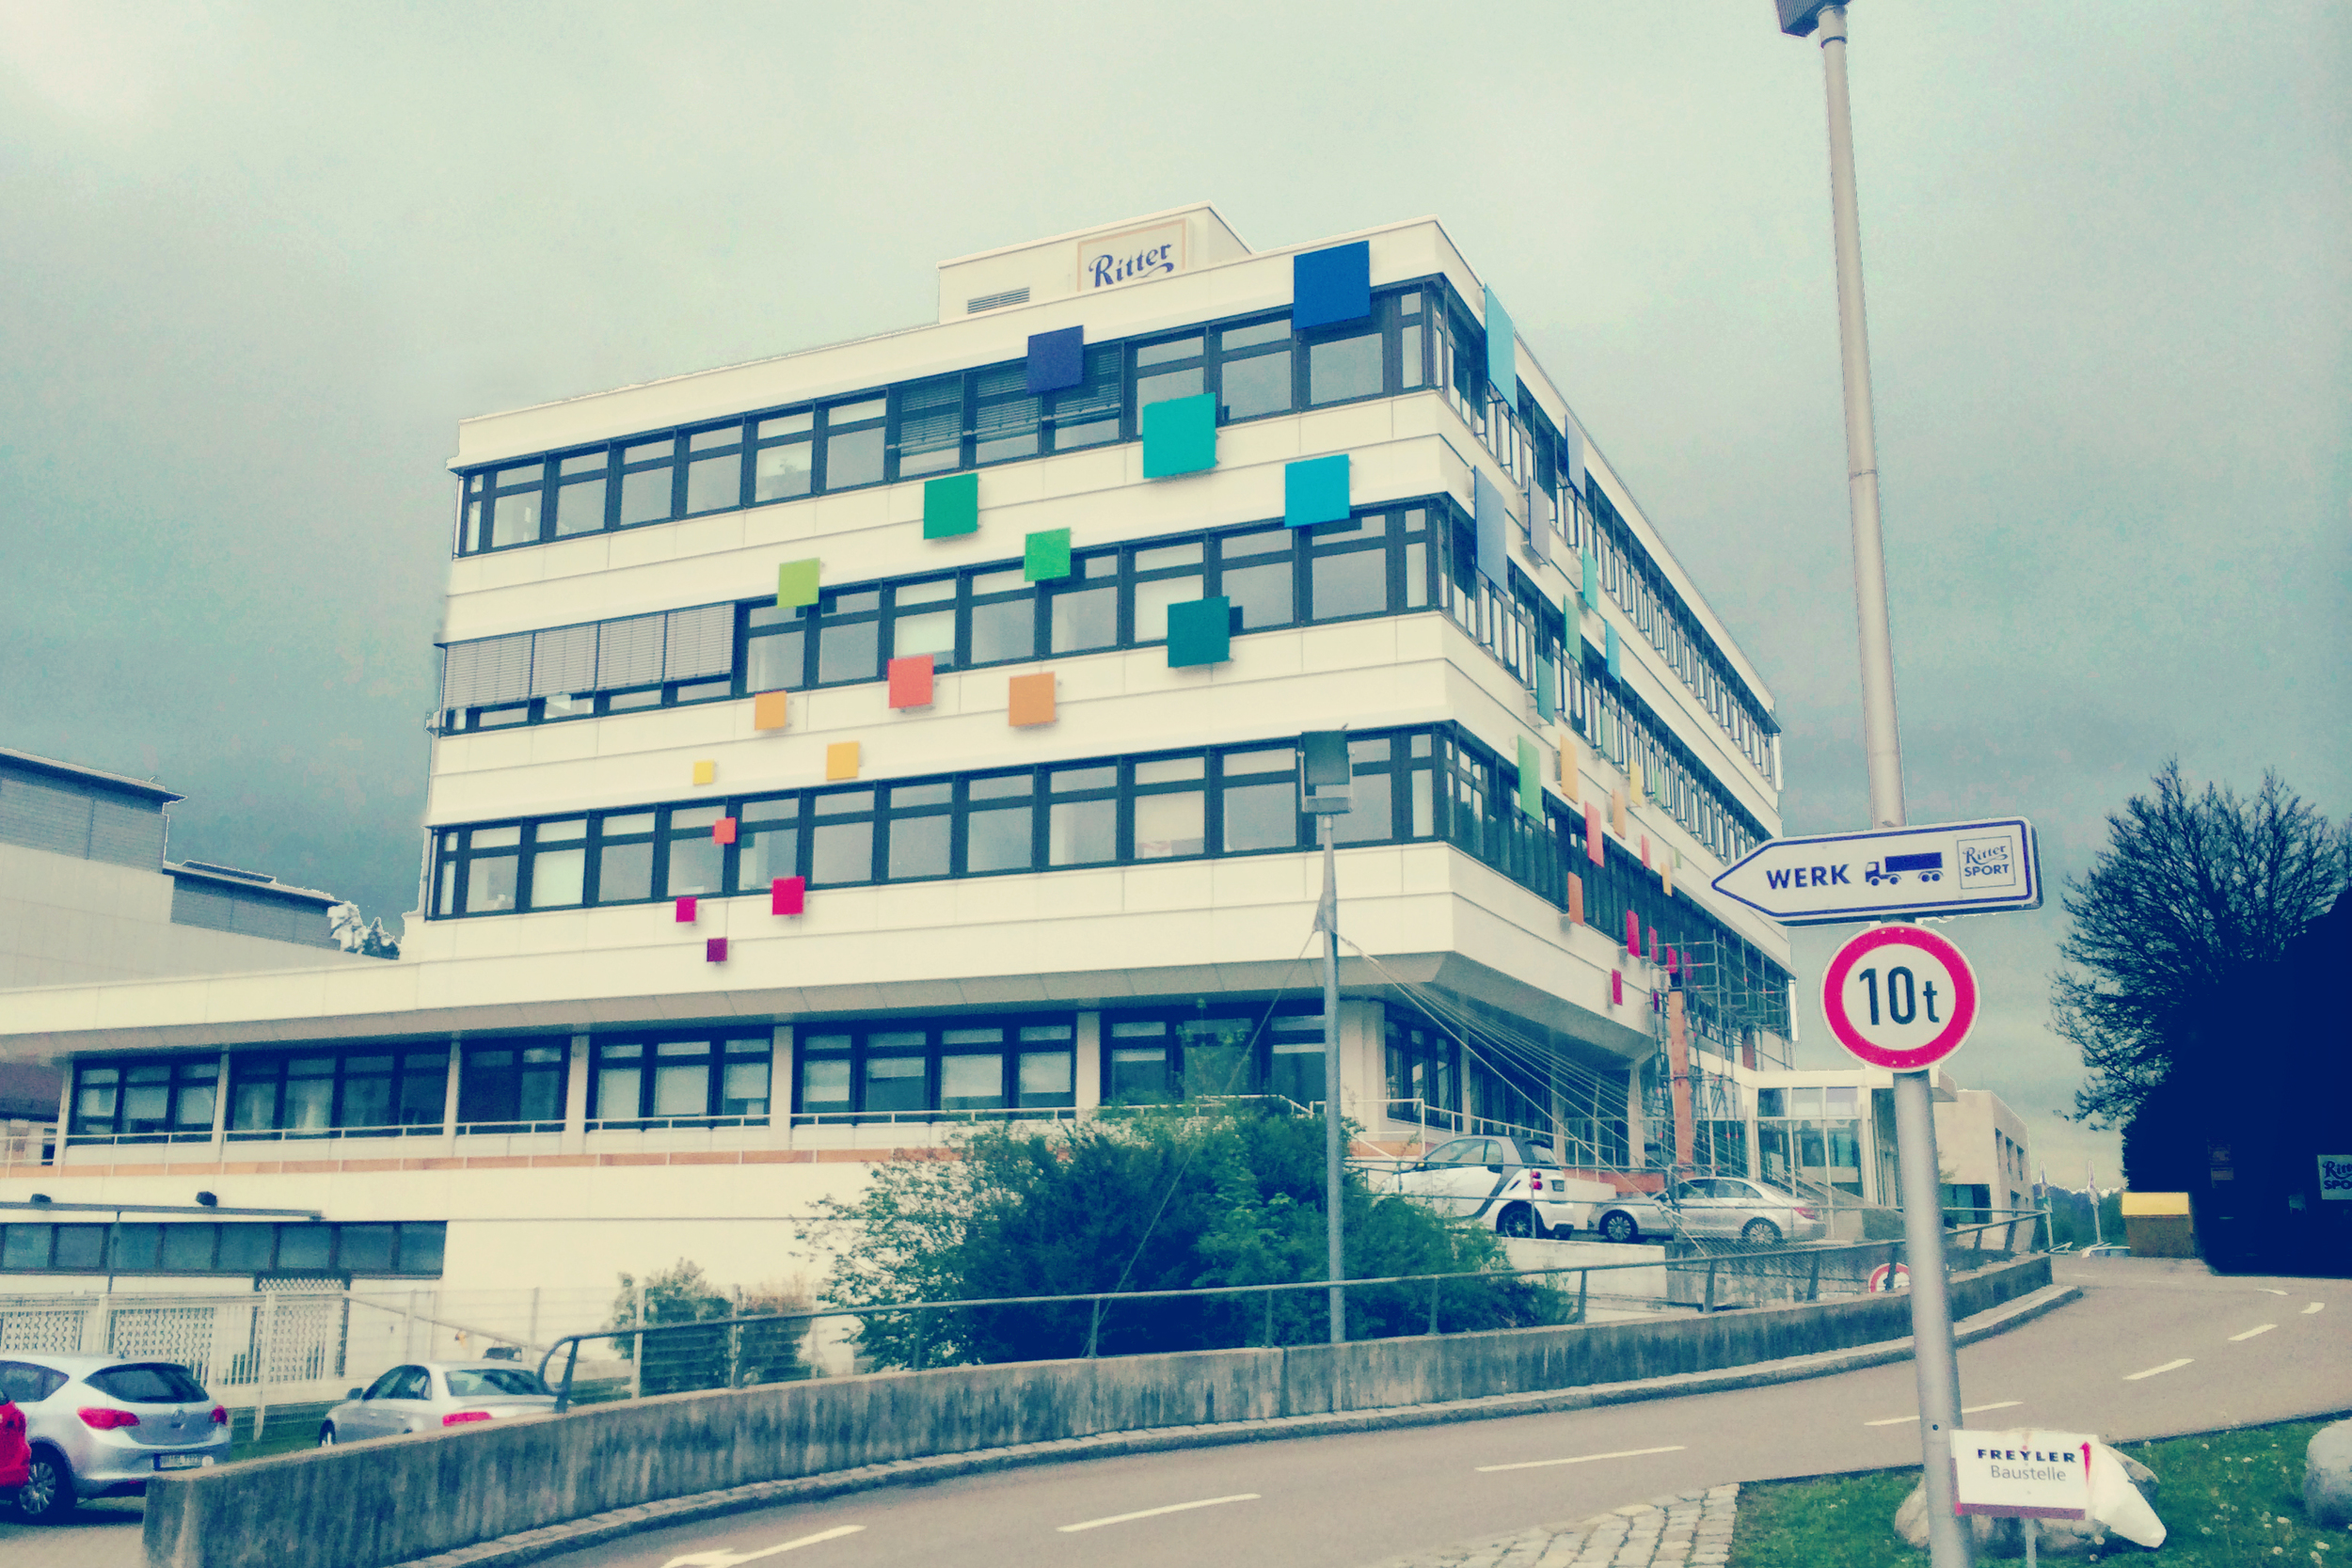 Speaking of good: I went to the Ritter Sport Chocolate museum this week!